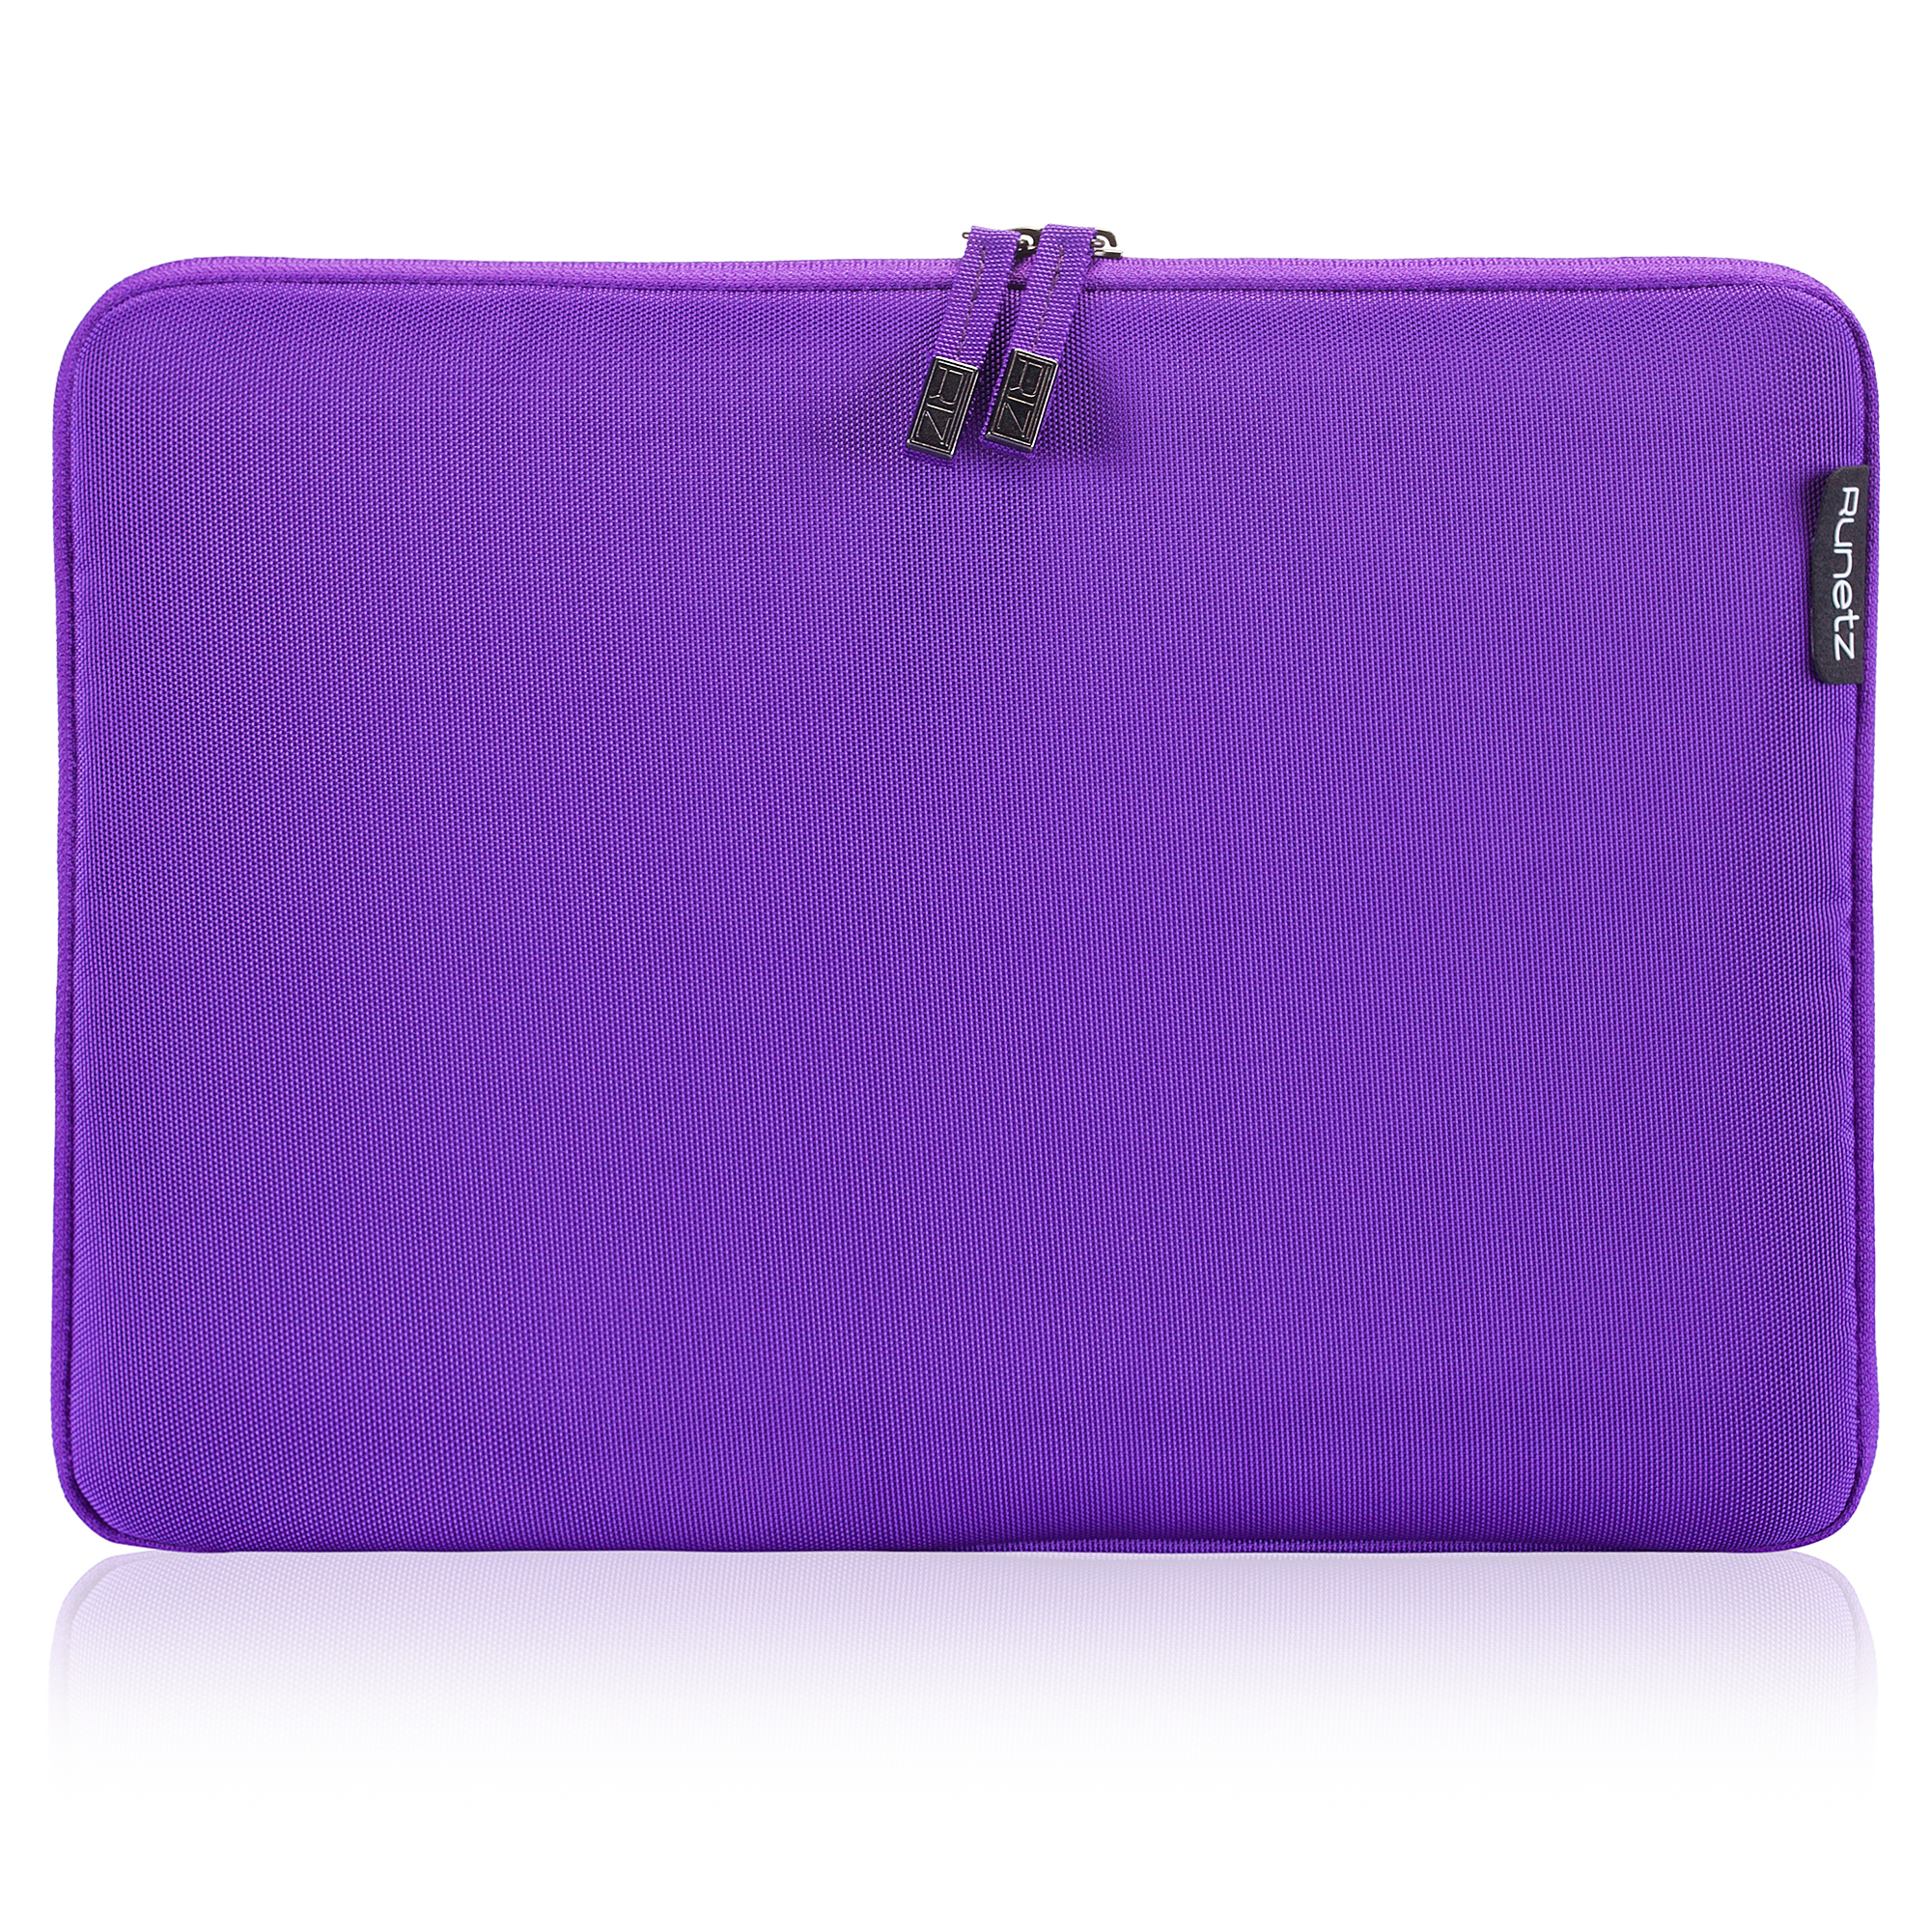 Squishy Laptop Cases : Runetz - Soft Sleeve Cover for MacBook 11